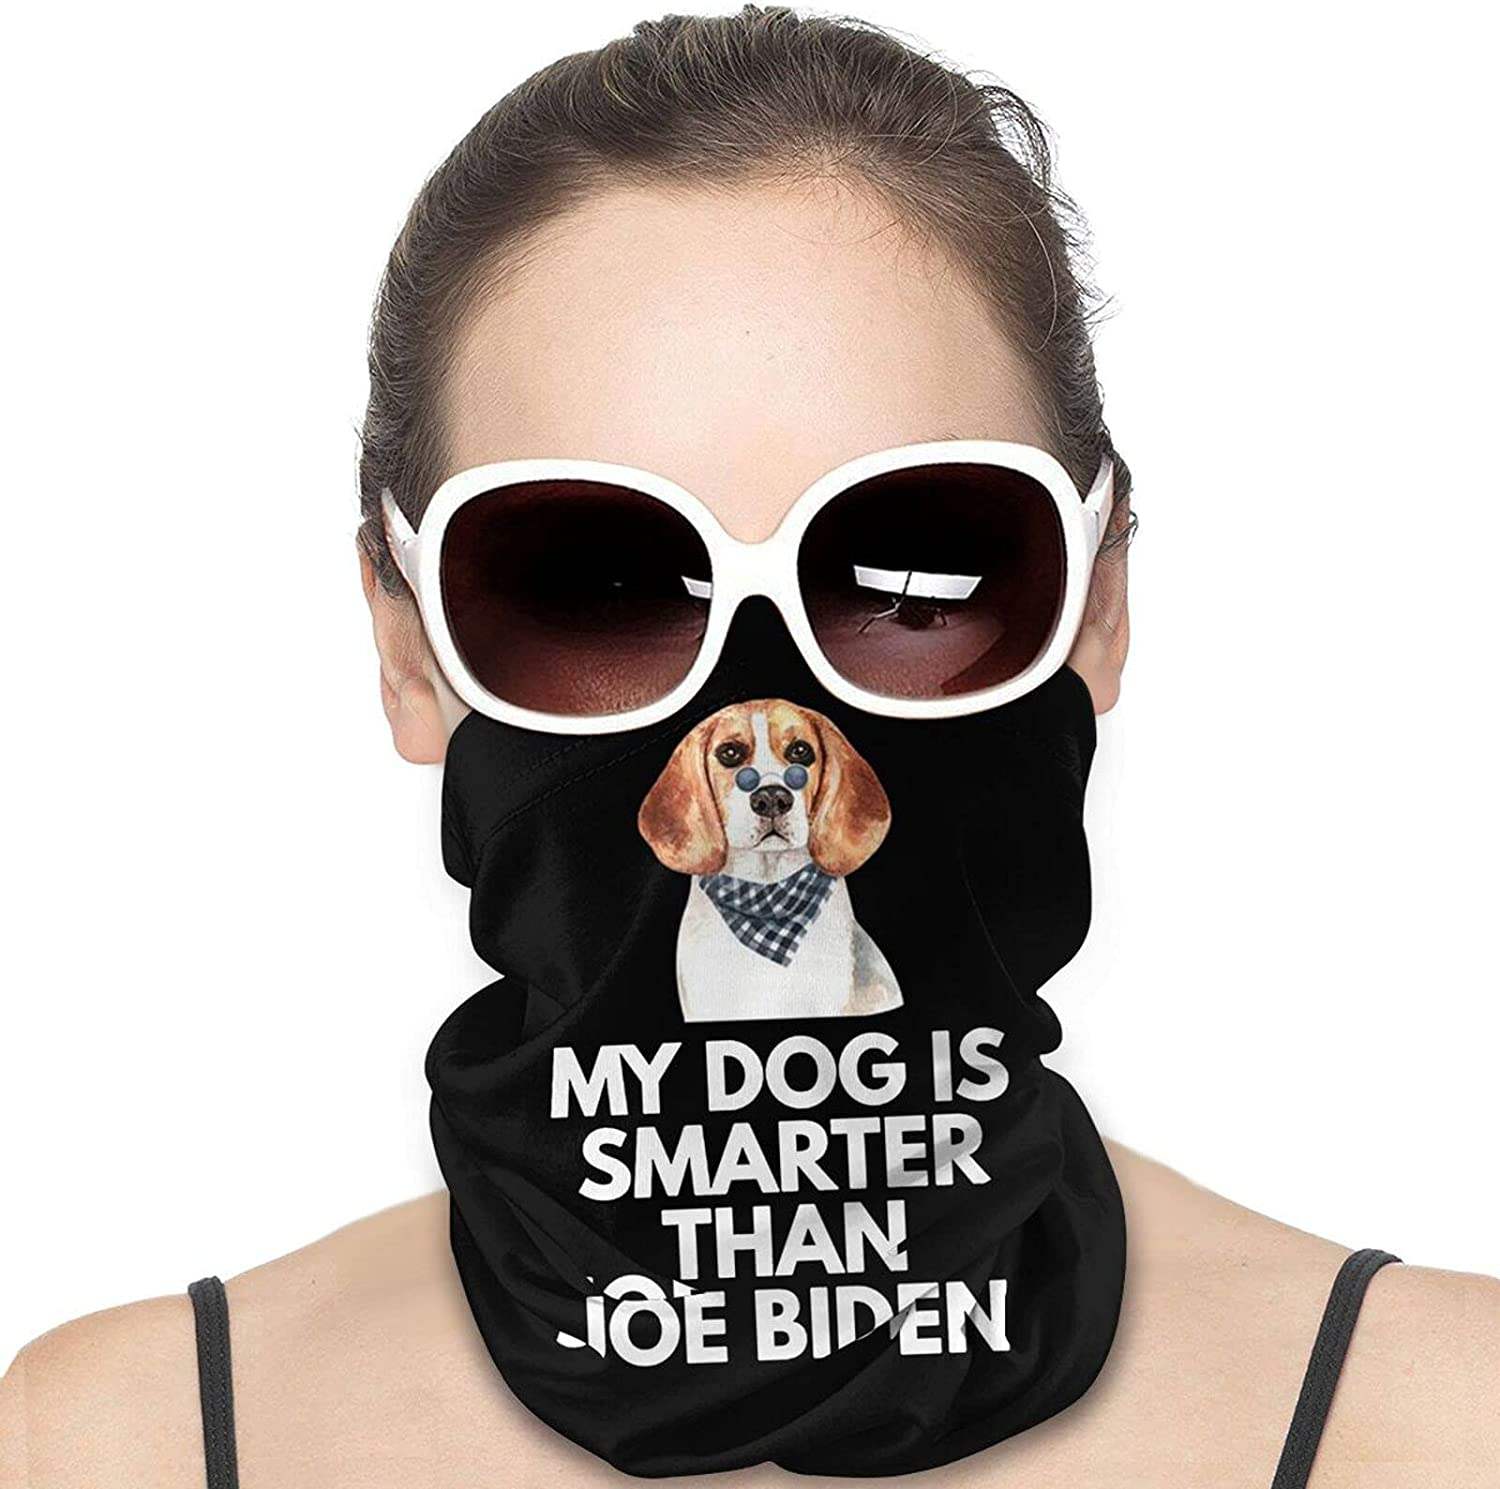 My dogIs Smarter Than Joe Biden Round Neck Gaiter Bandnas Face Cover Uv Protection Prevent bask in Ice Scarf Headbands Perfect for Motorcycle Cycling Running Festival Raves Outdoors